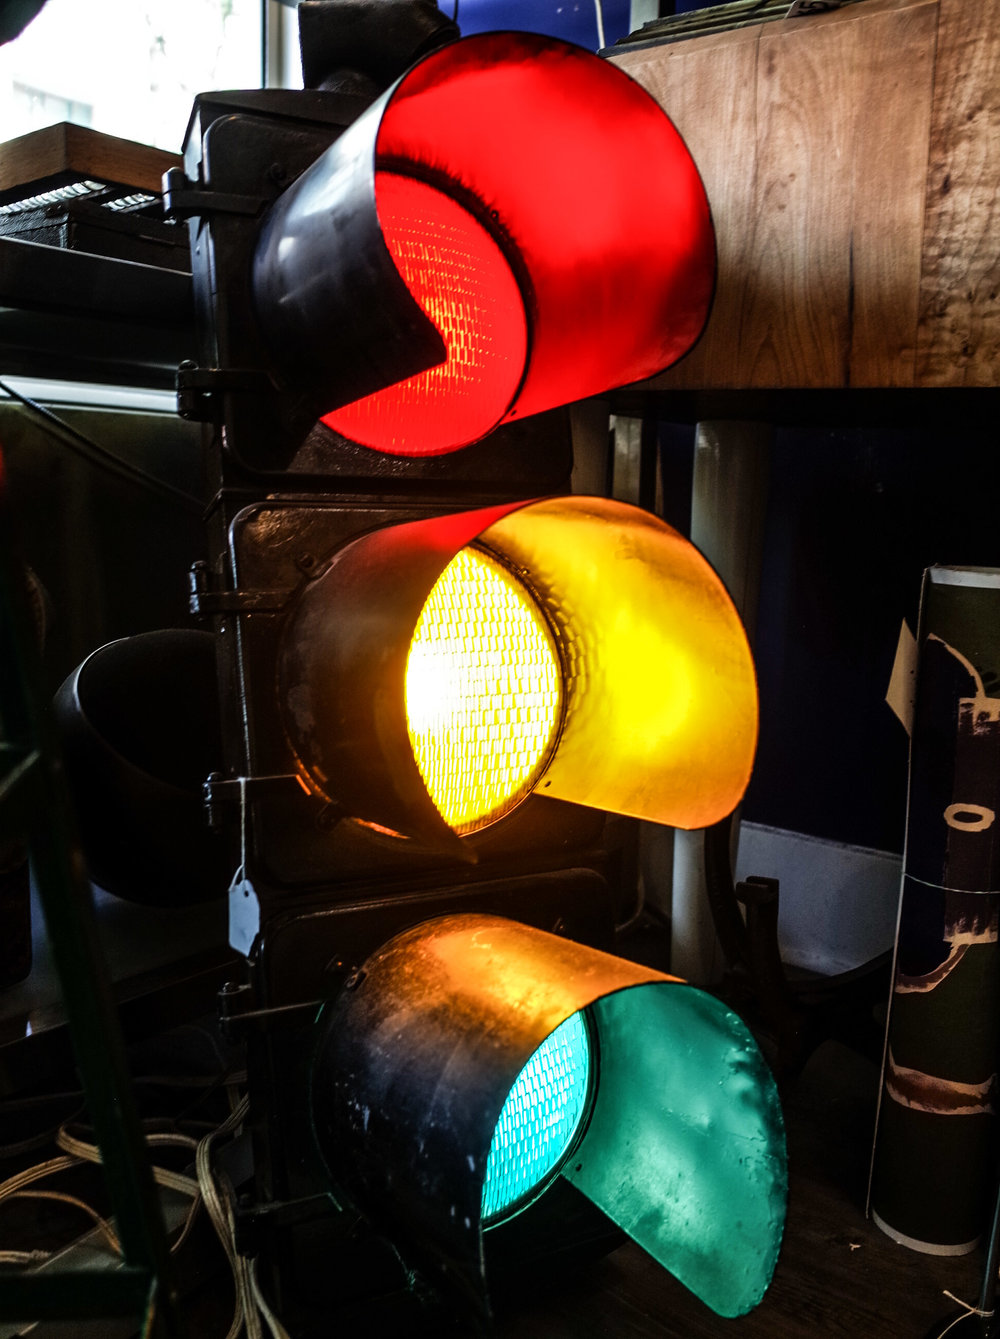 over-sized-traffic-light.jpg